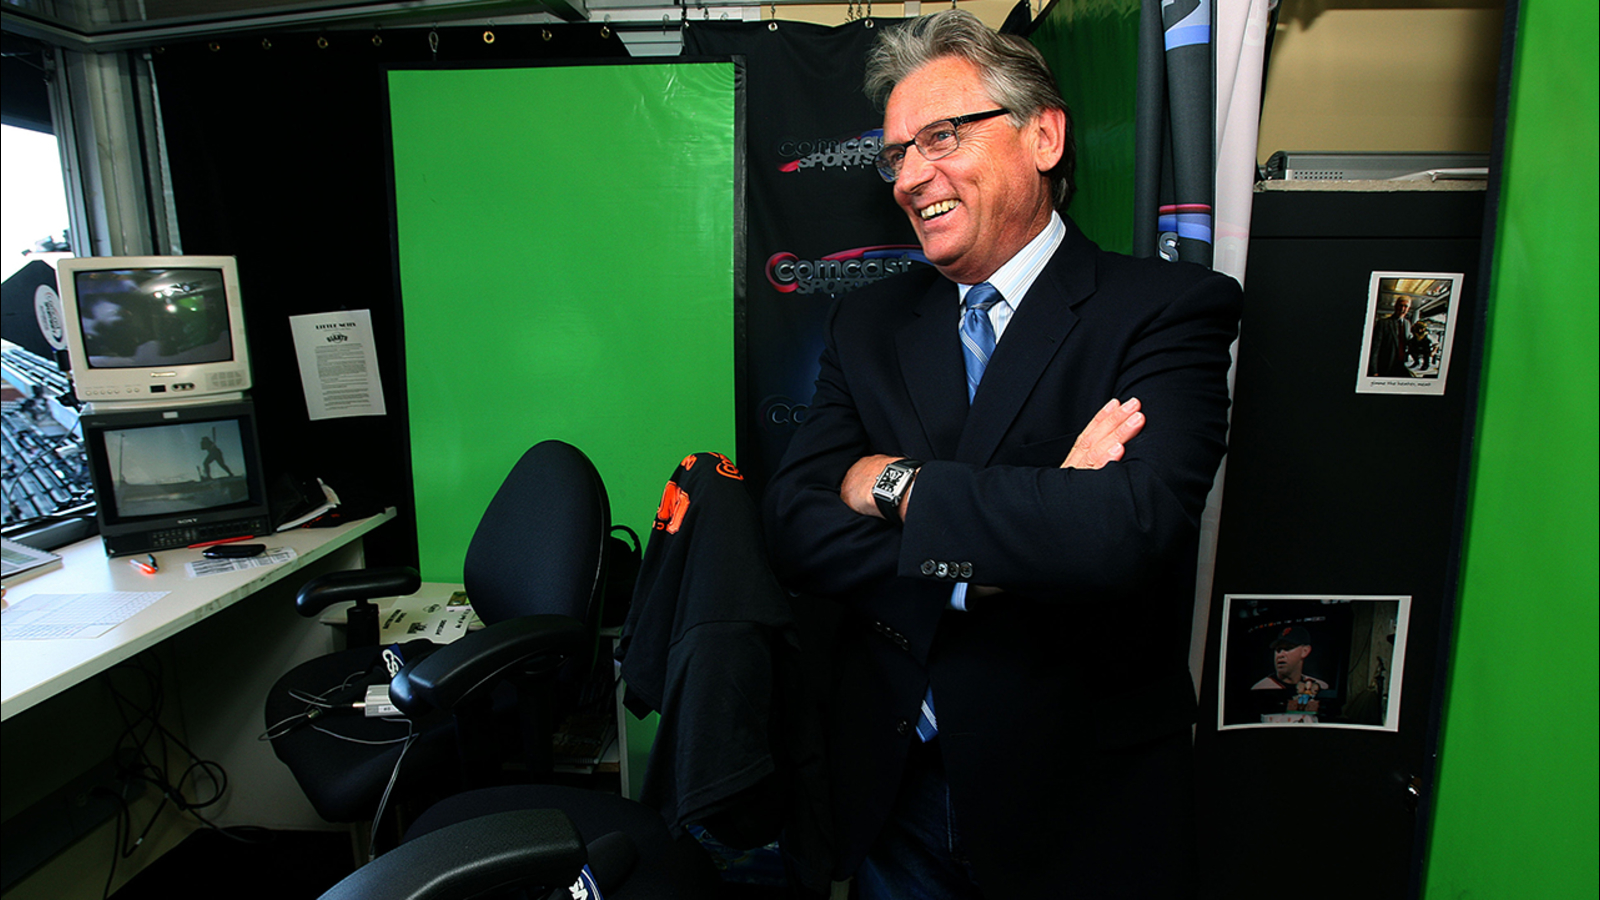 San Francisco Giants announcer Duane Kuiper to take leave of absence for medical condition